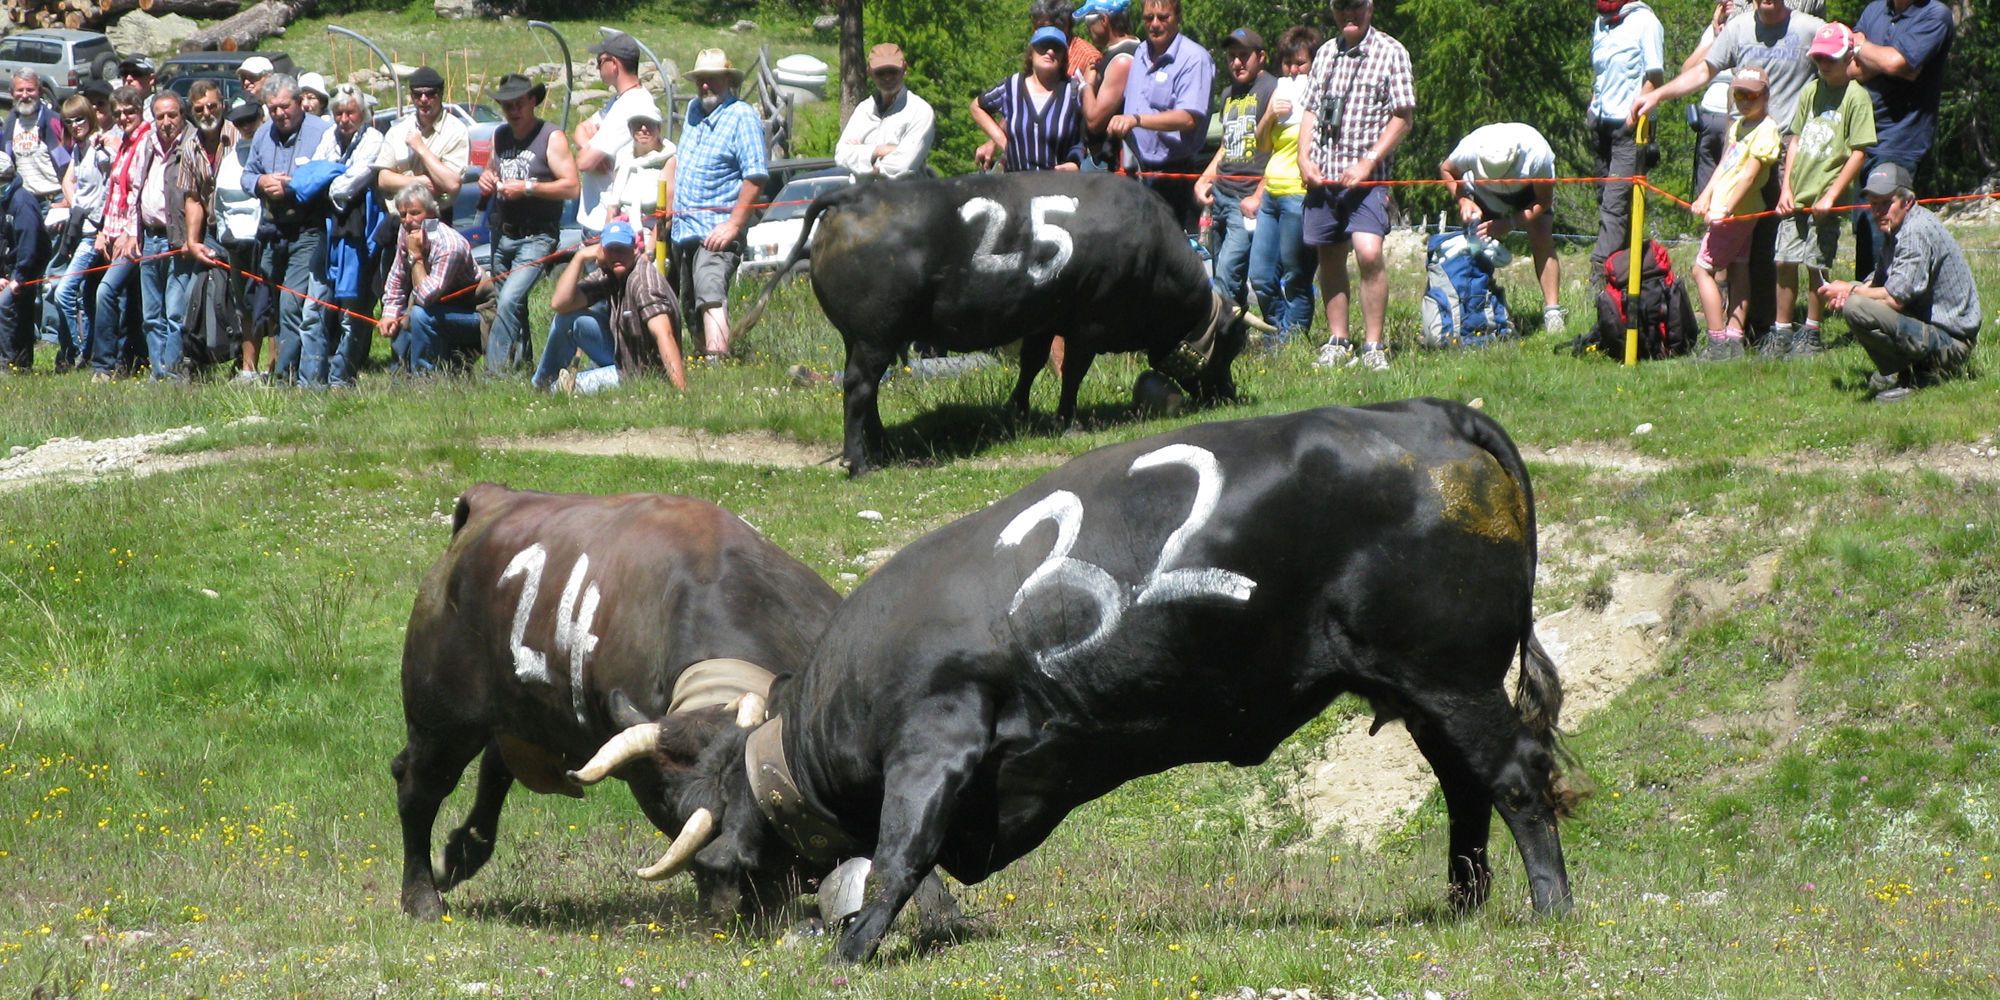 Cow fights and alpine processions in the Free Republic of Holidays Saas-Fee